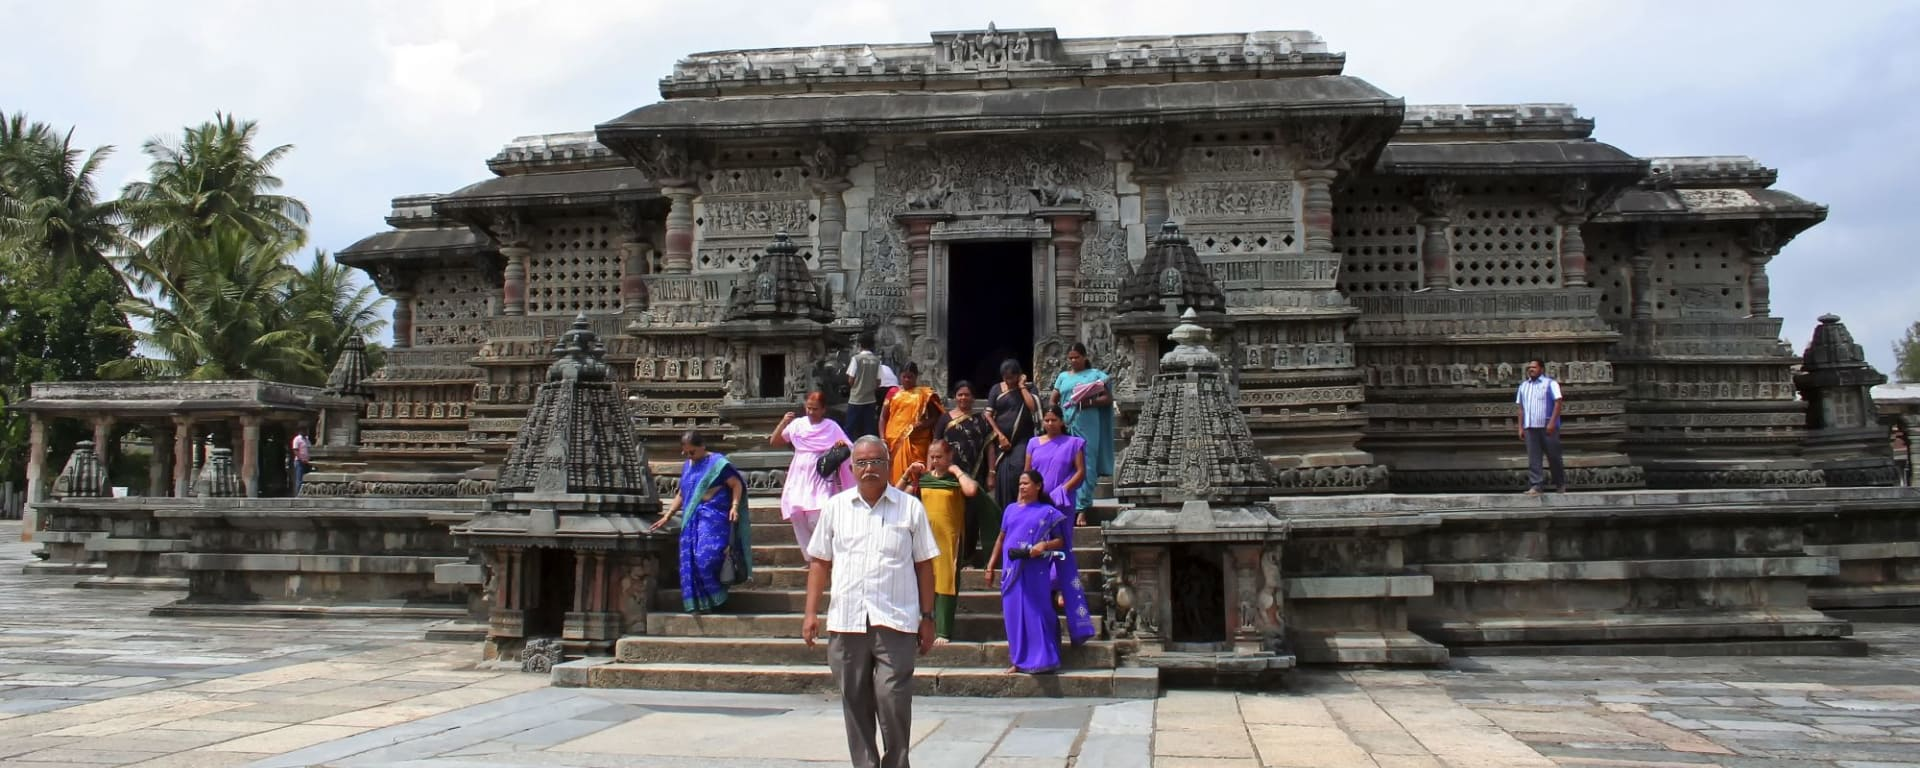 Trésors culturels du Karnataka de Bengaluru: Belur: temple with local tourists